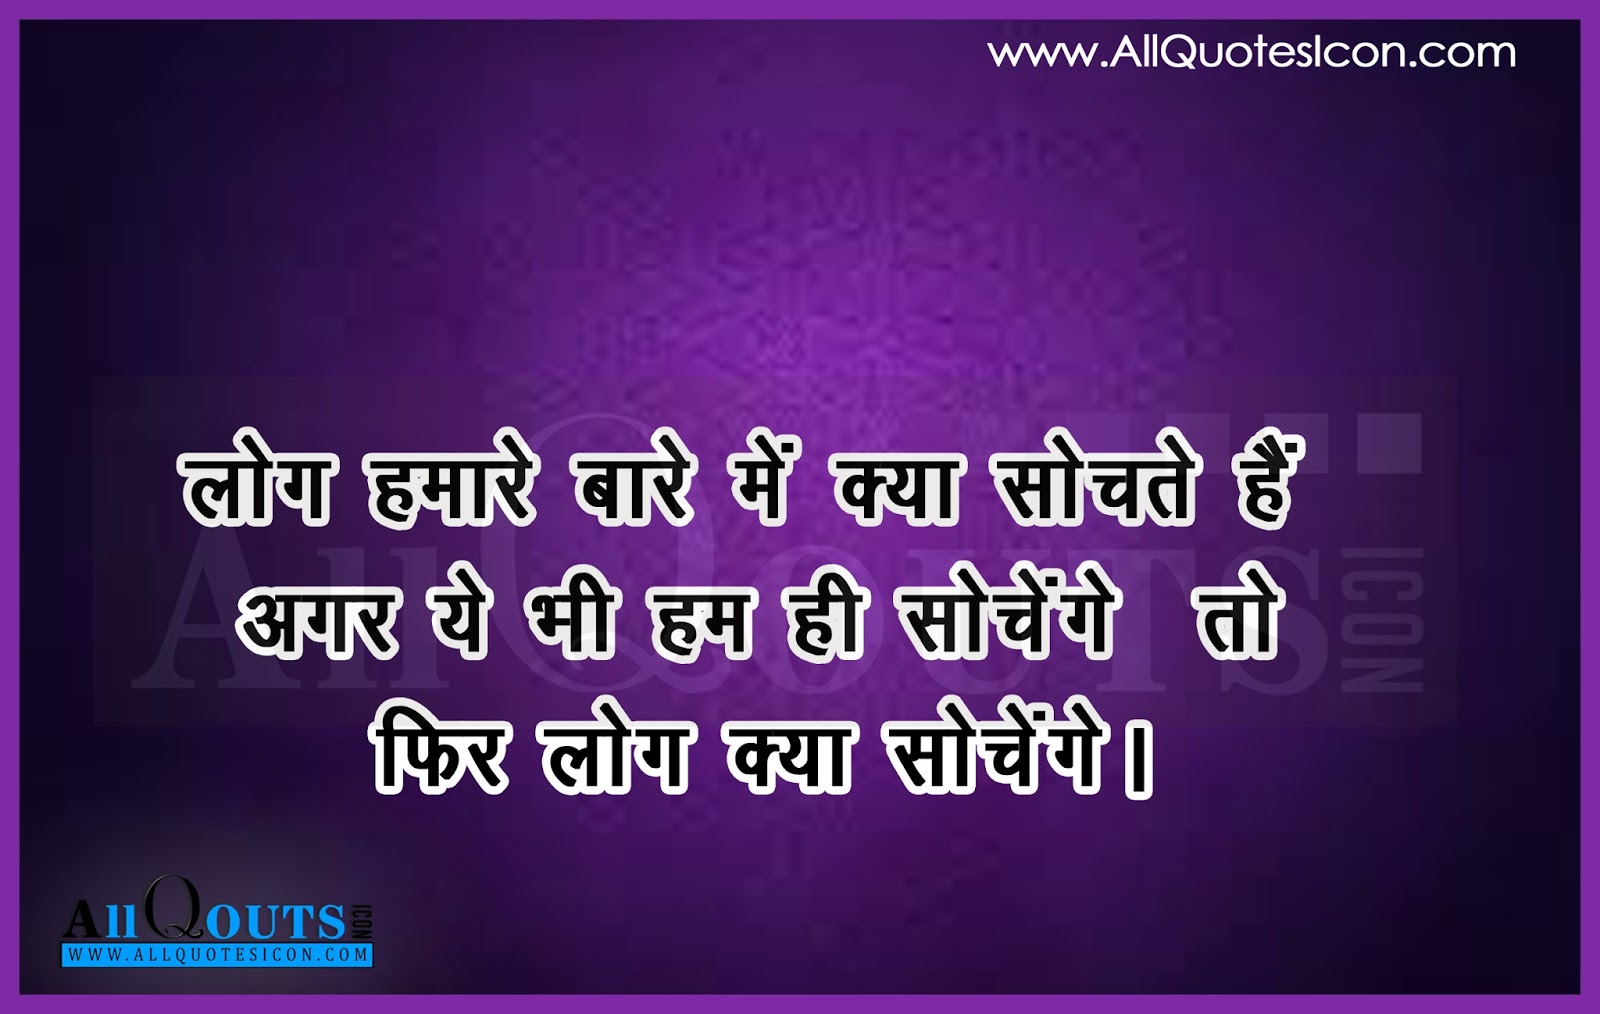 Imagenes De Short Thought On Life In Hindi